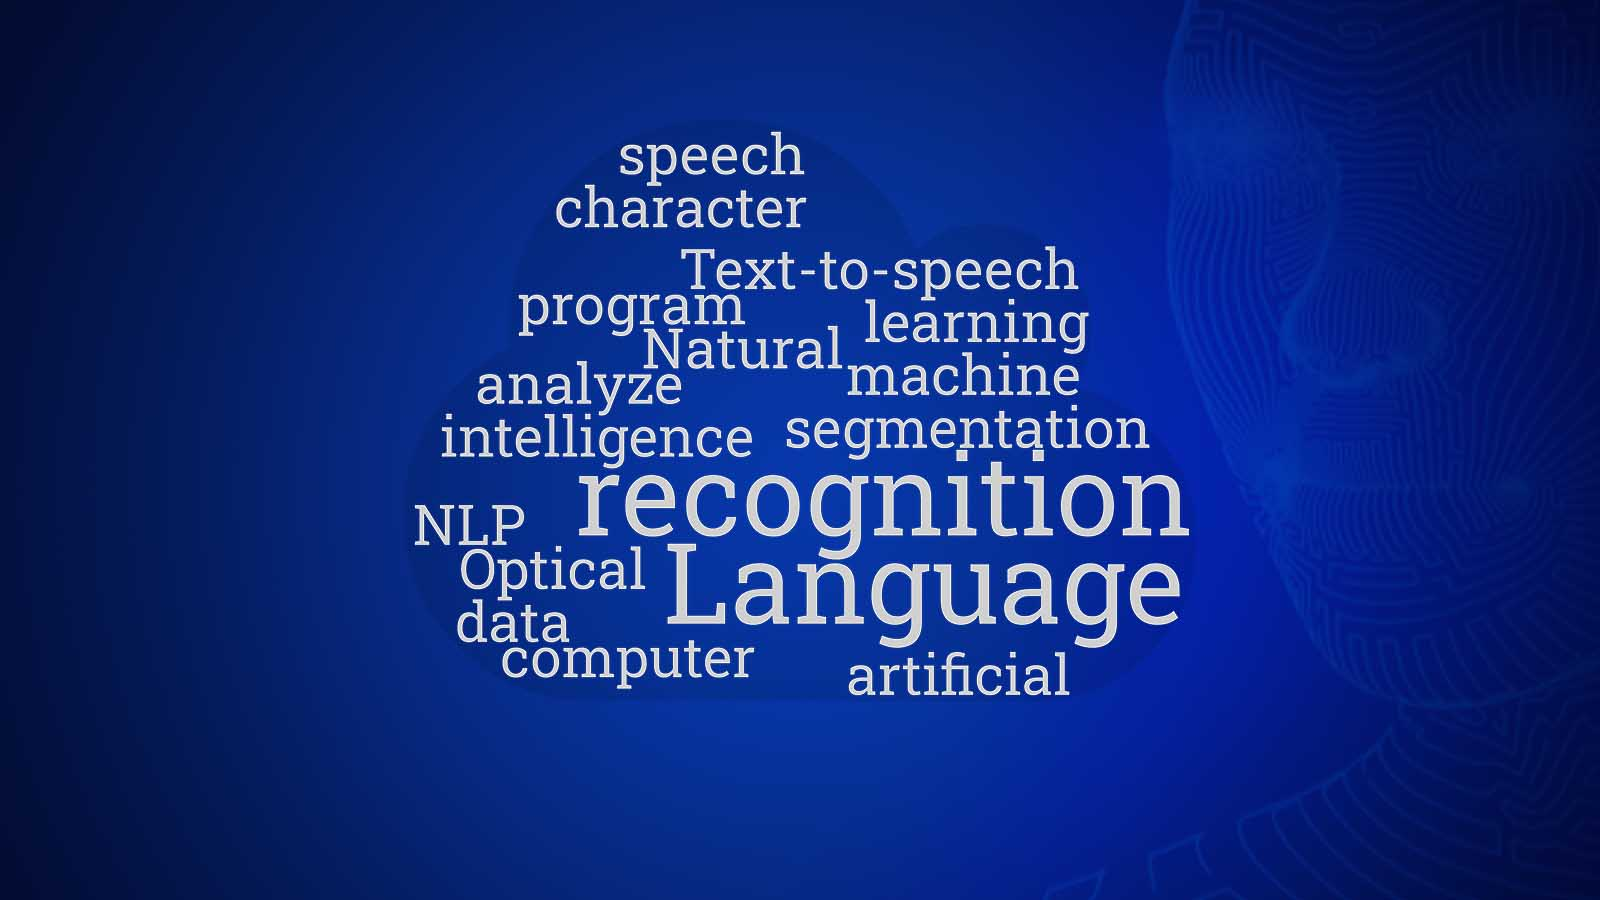 Fundamental concepts of NLP - Part-of-Speech Tag, Dependency and Constituency Parsing